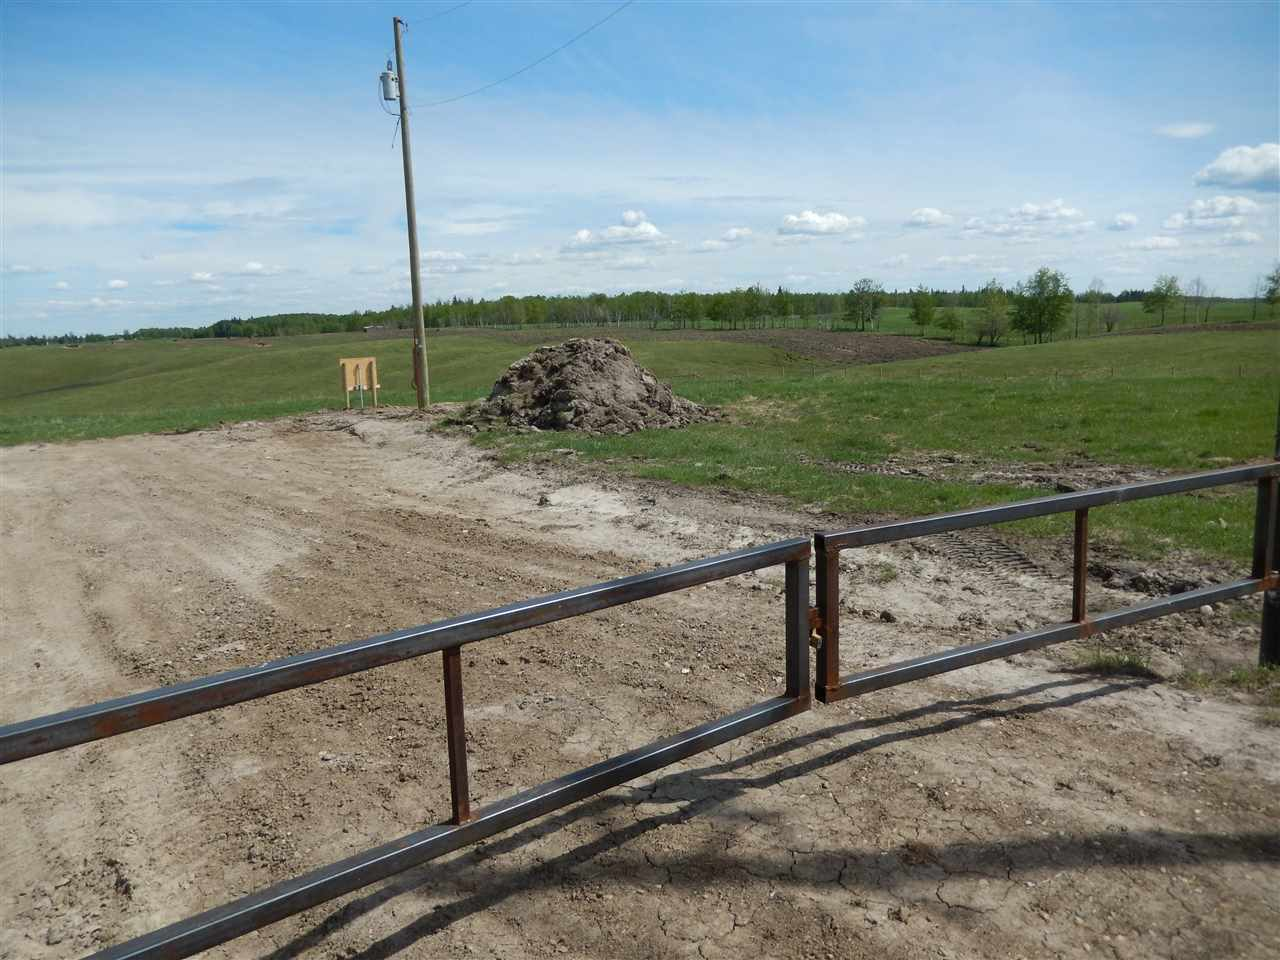 ROLLING 3.86 ACRES close to Lake Isle & Wabamun Lake....POWER is COMPLETE and the DRIVEWAY is in....just needs some more gravel.   Property is TOTALLY FENCED with a GATE.  Gas to property line.  Plenty of opportunity here for a WALK-OUT.  Only 1.5 miles of gravel after pavement.